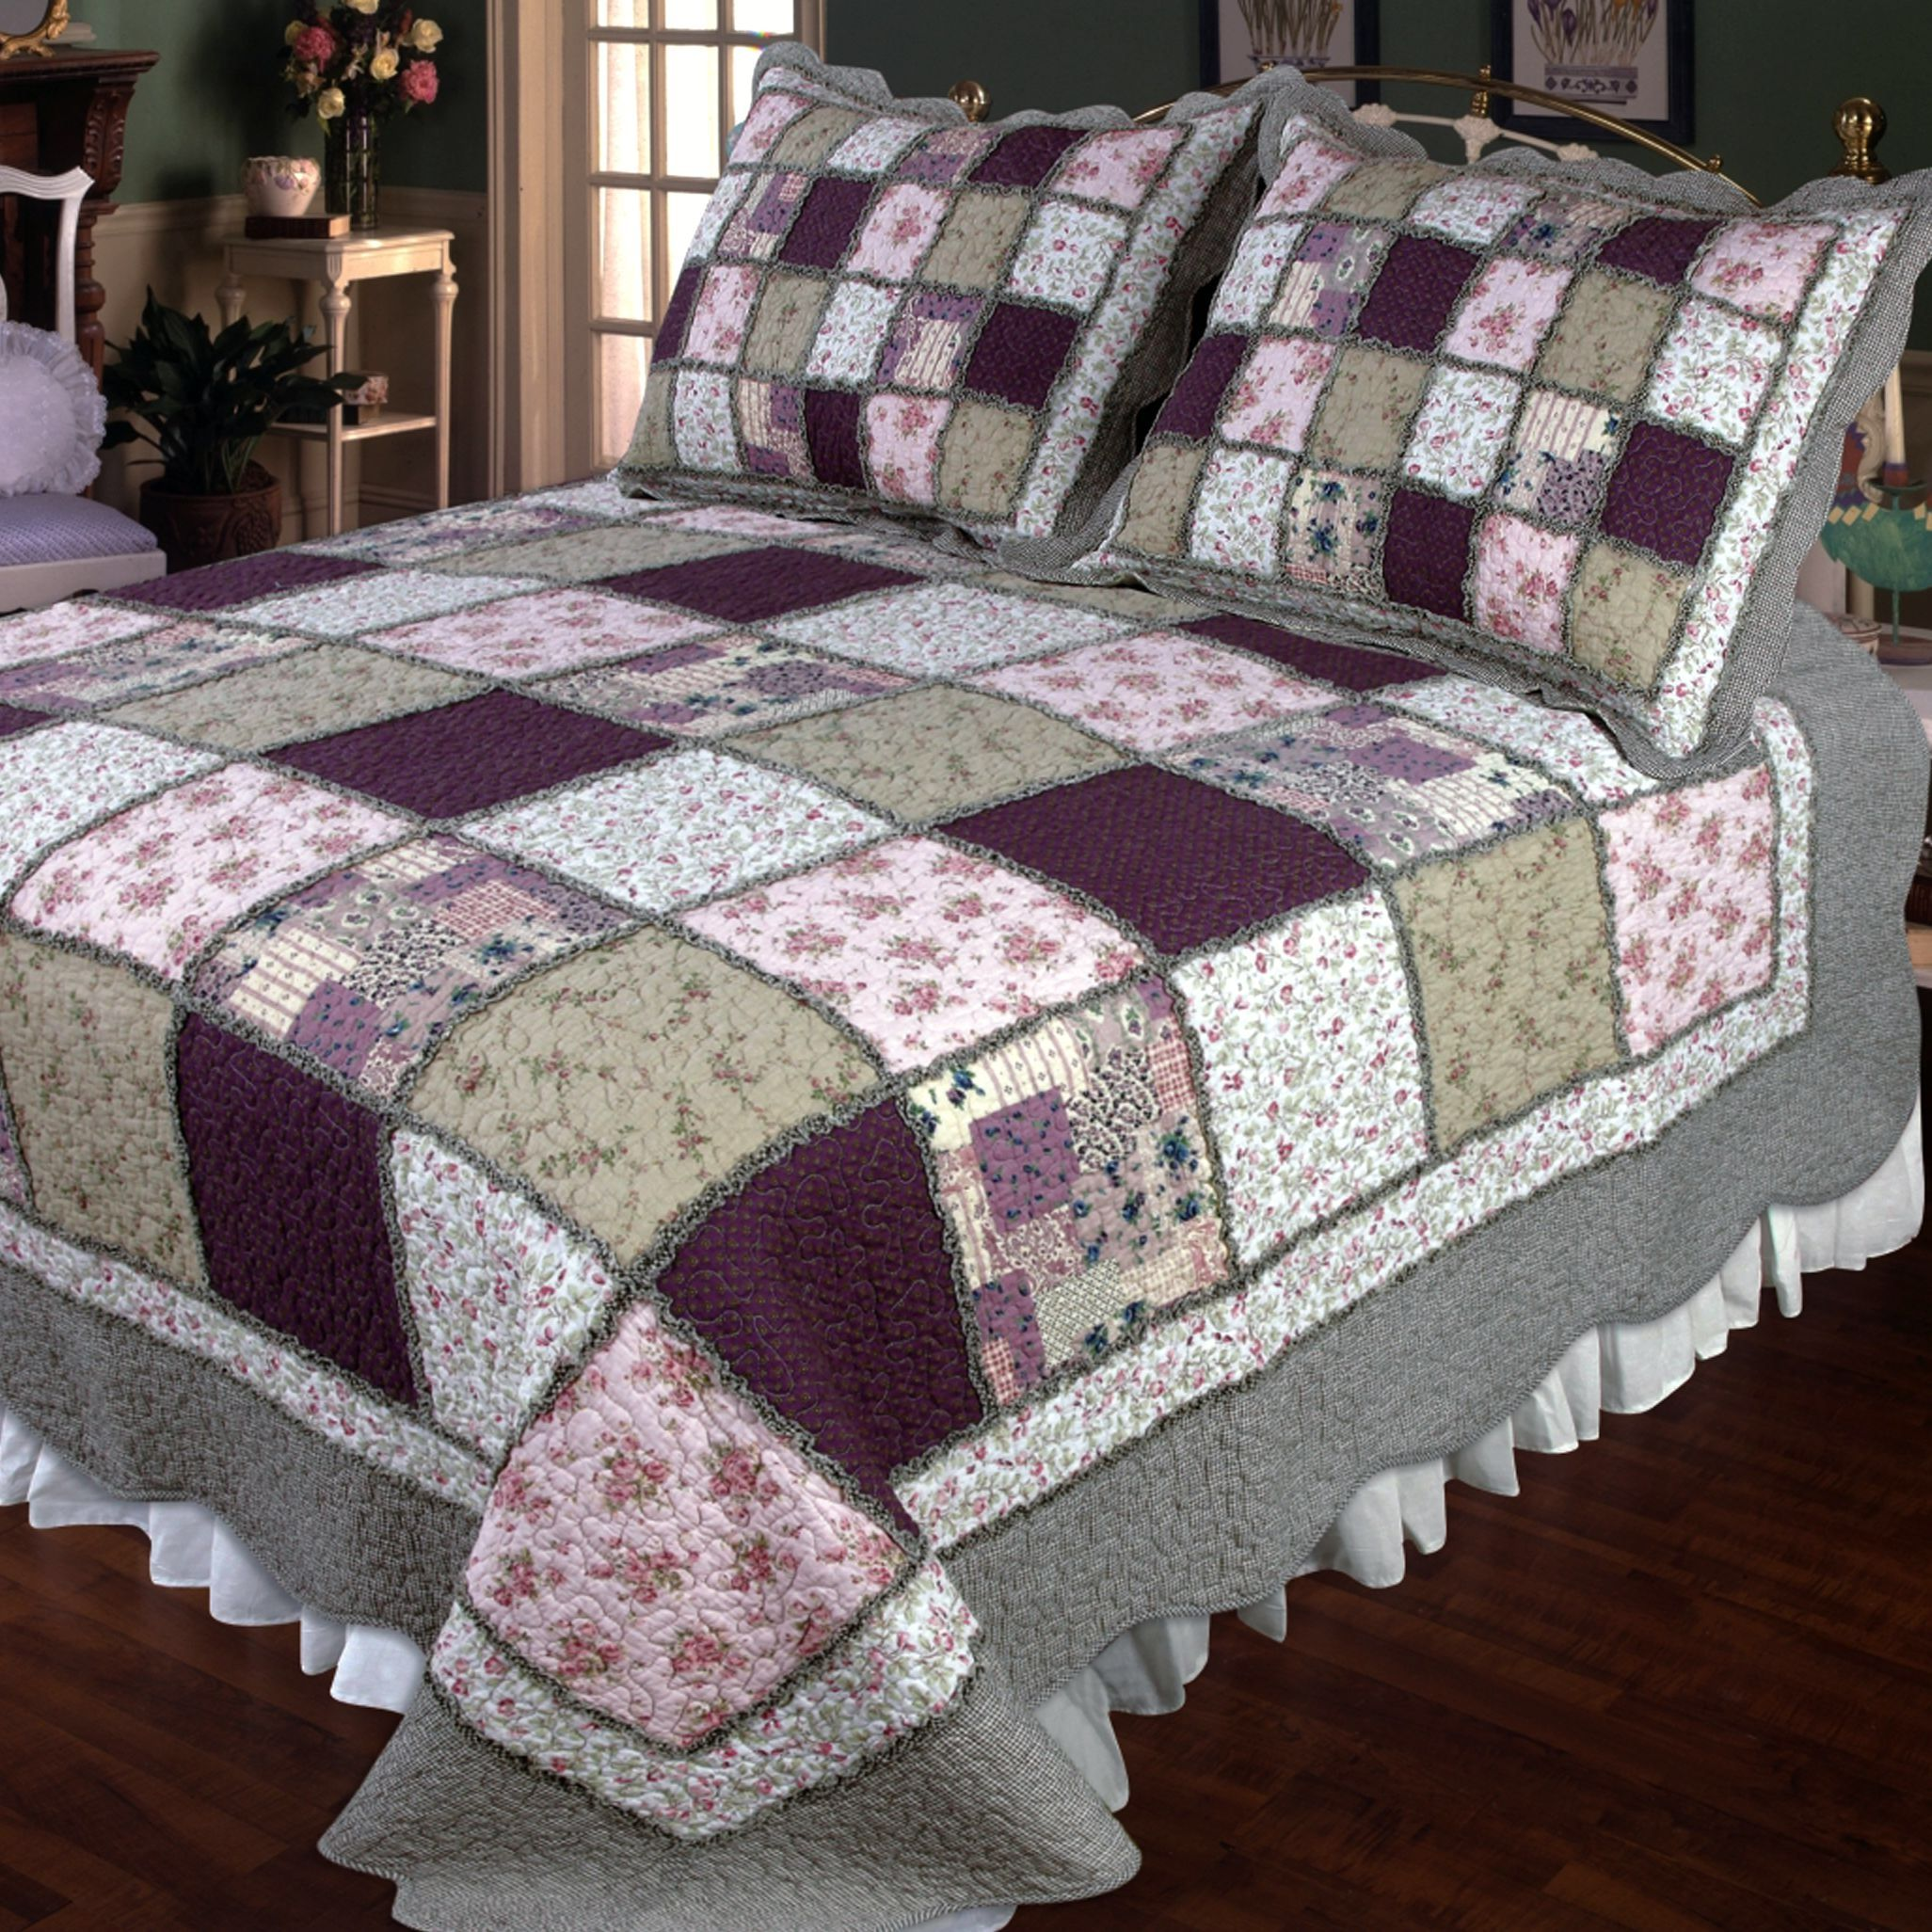 Features: -Sugar Plum collection. -Material: Cotton fabrics ... : filling for quilts - Adamdwight.com